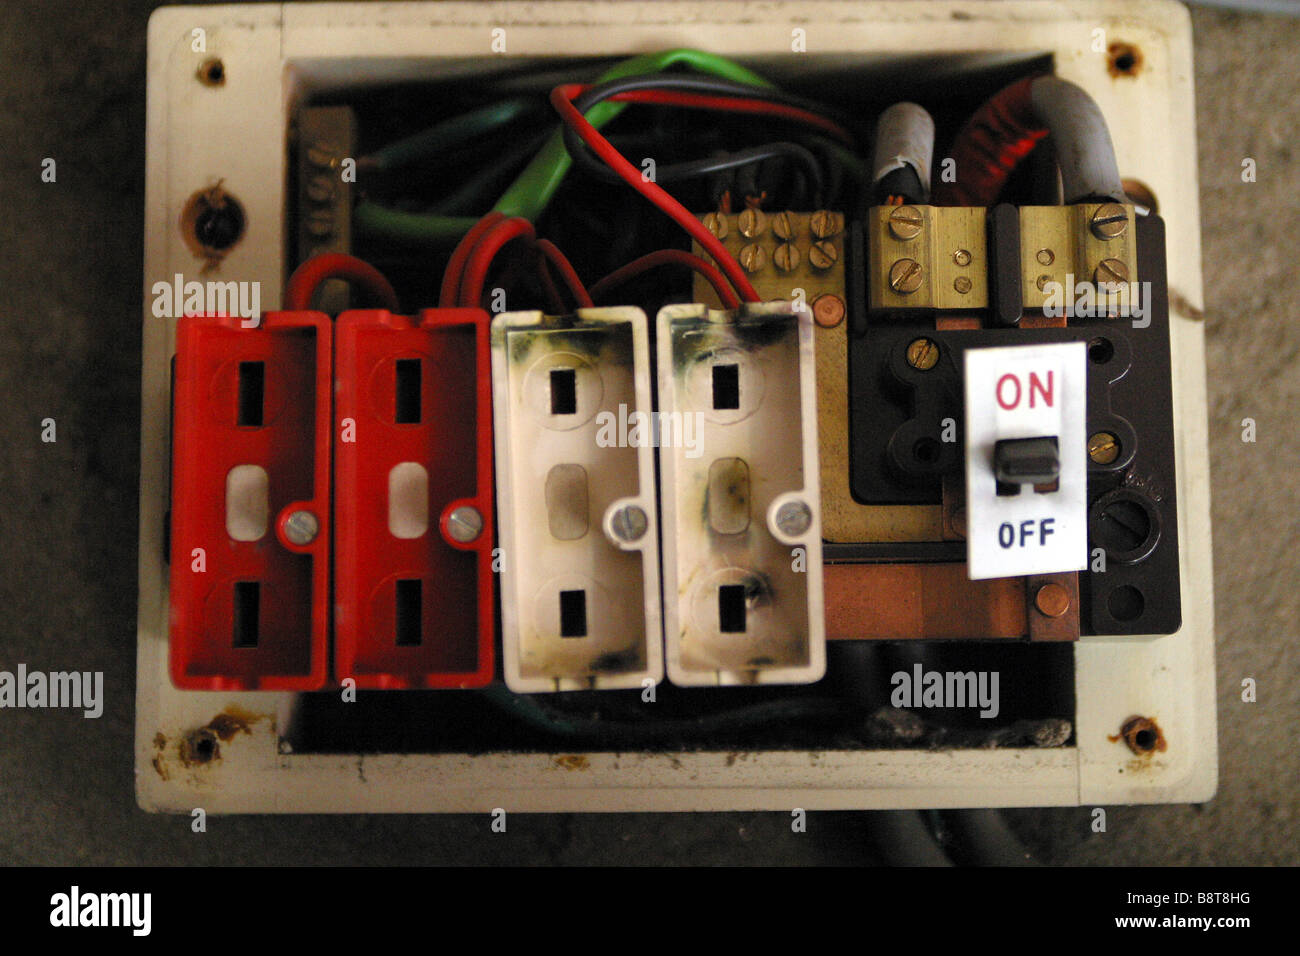 fuse box house stock photos fuse box house stock images alamy rh alamy com old house fuse box problems old house fuse box wiring